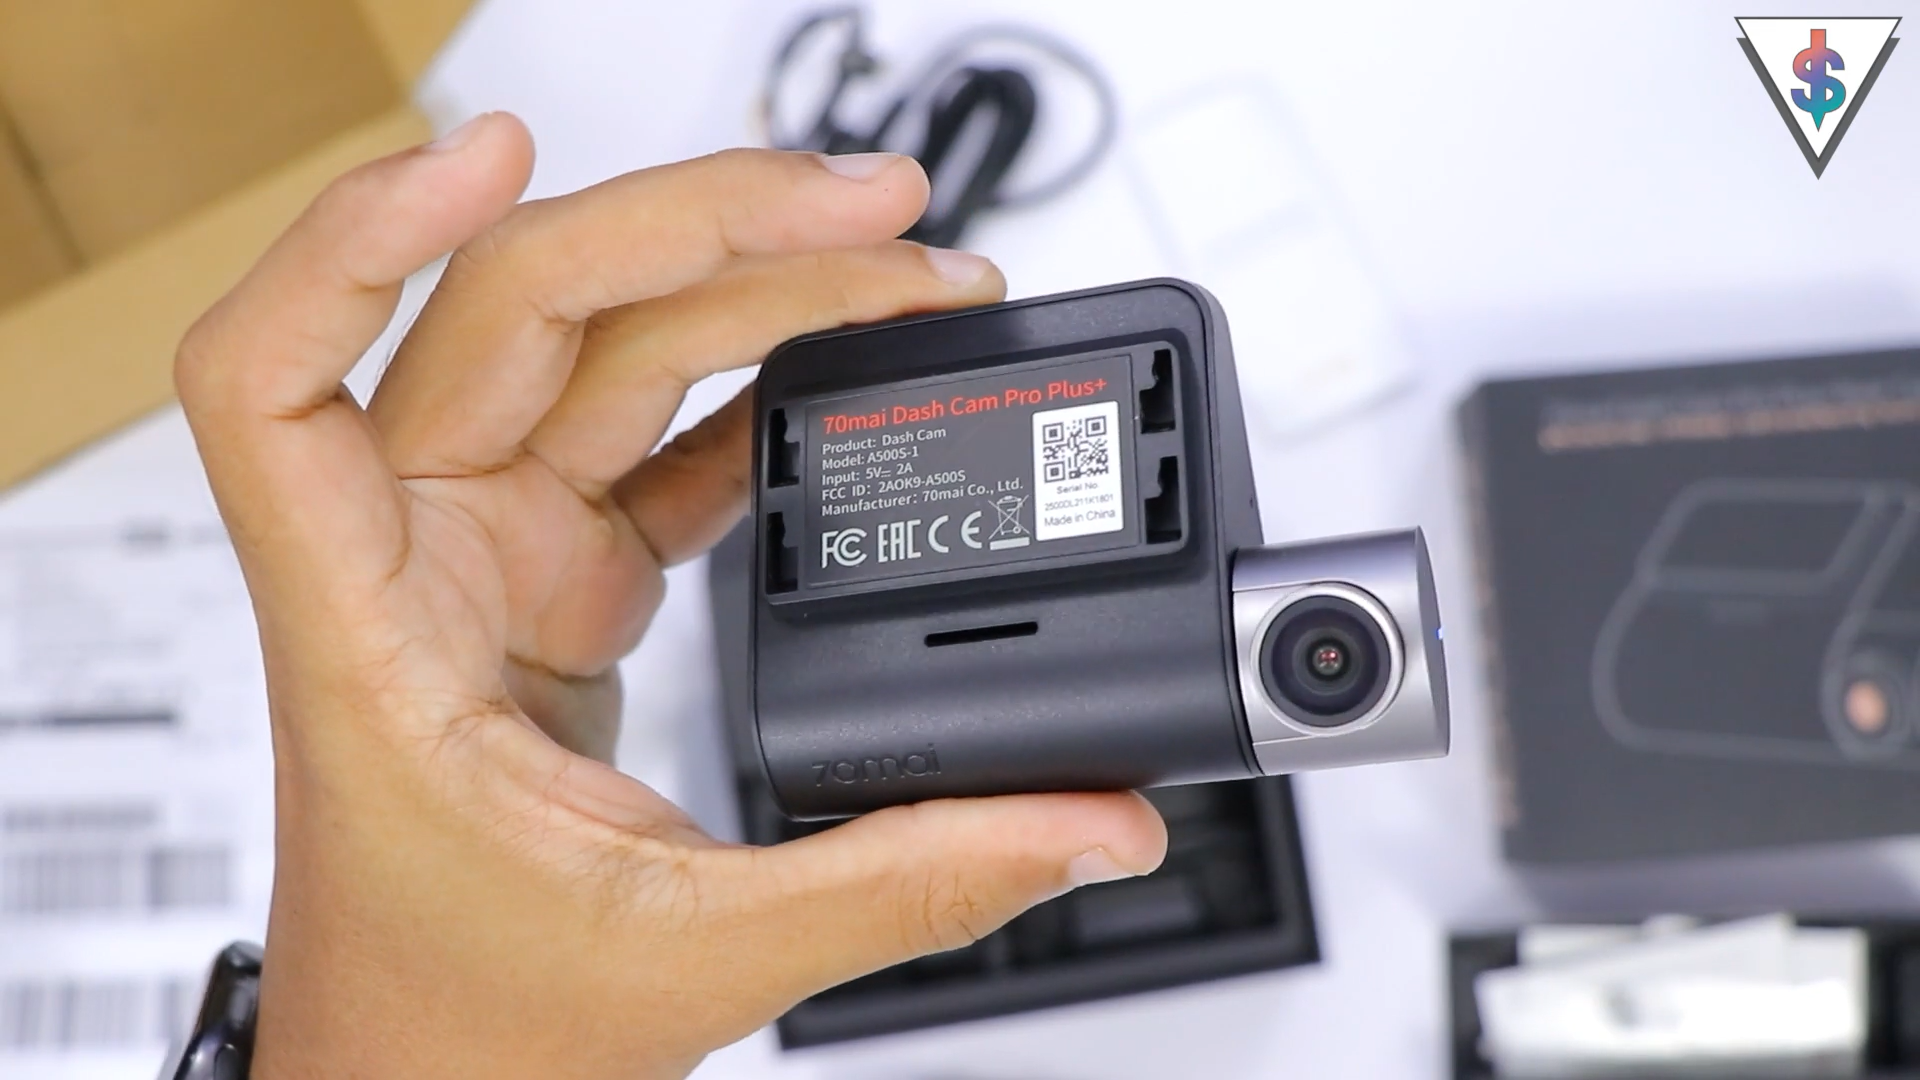 4 - Best Dashcam you can buy - 70mai Dash Cam Pro Plus+ Review after 6 months!